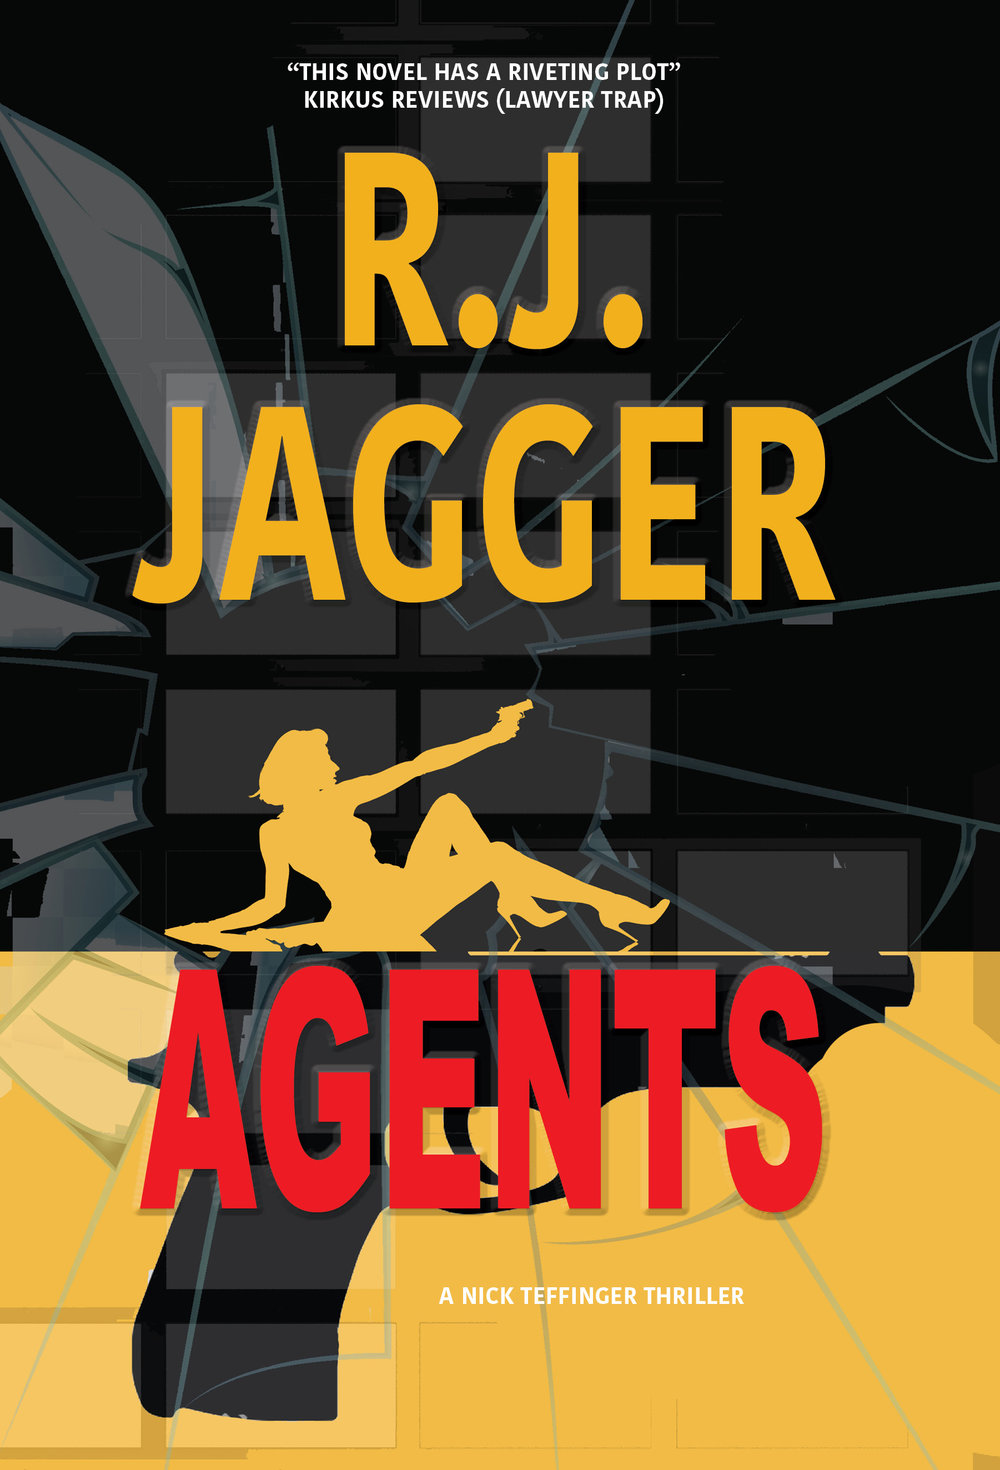 AGENTS - In this pulse-pounding thriller from International Thriller Writer R.J. Jagger, Denver homicide detective Nick Teffinger meets a beautiful young lawyer in a fender bender. Now they're both on the run from the rogue corners of the CIA.  Coming in 2019 in hardcover, paperback, ebook and audiobook.